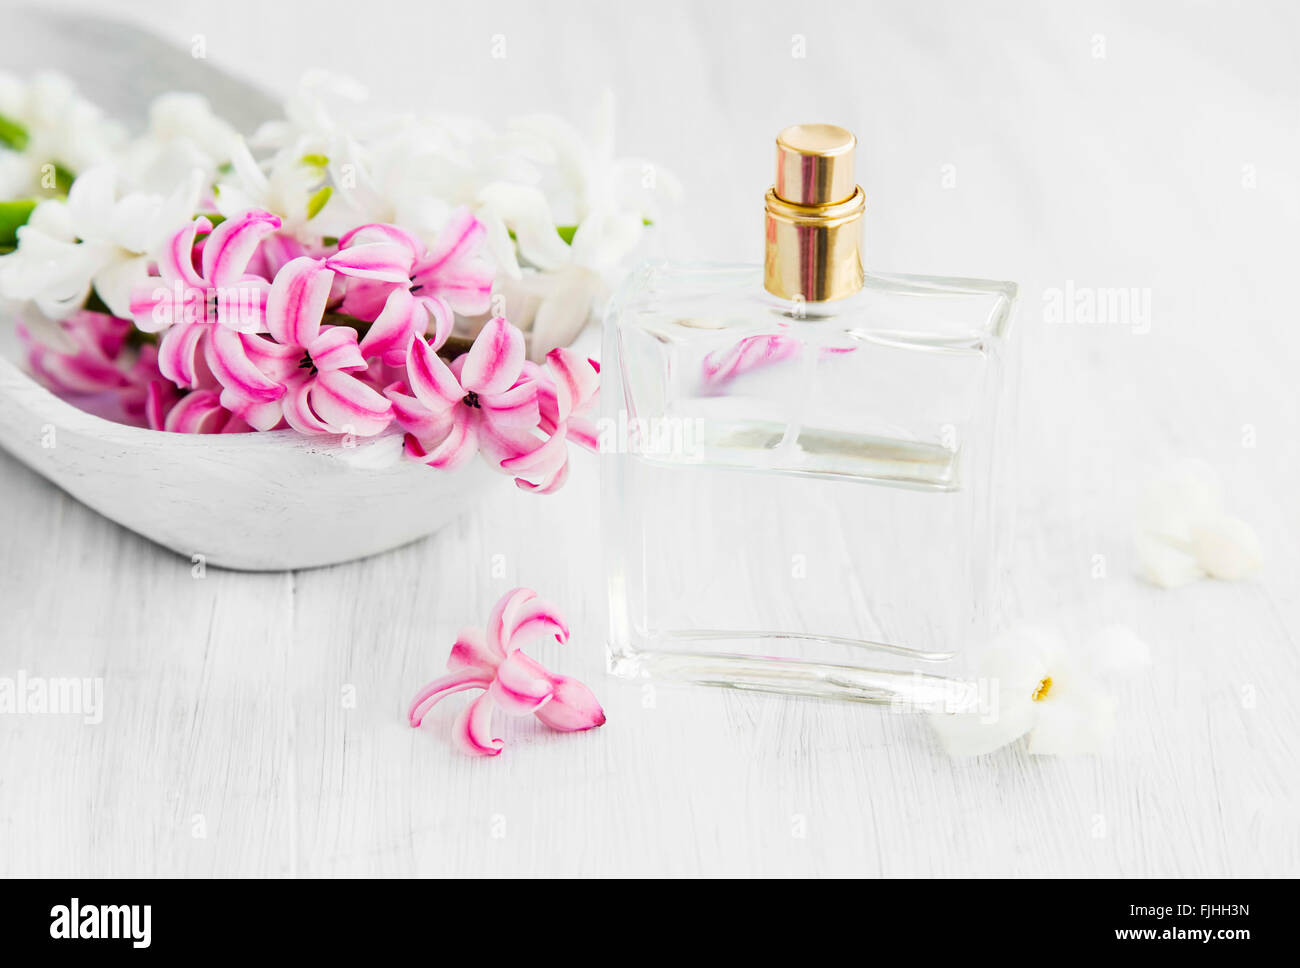 White and pink hyacinth flowers with perfume bottlespring flowers white and pink hyacinth flowers with perfume bottlespring flowers perfume mightylinksfo